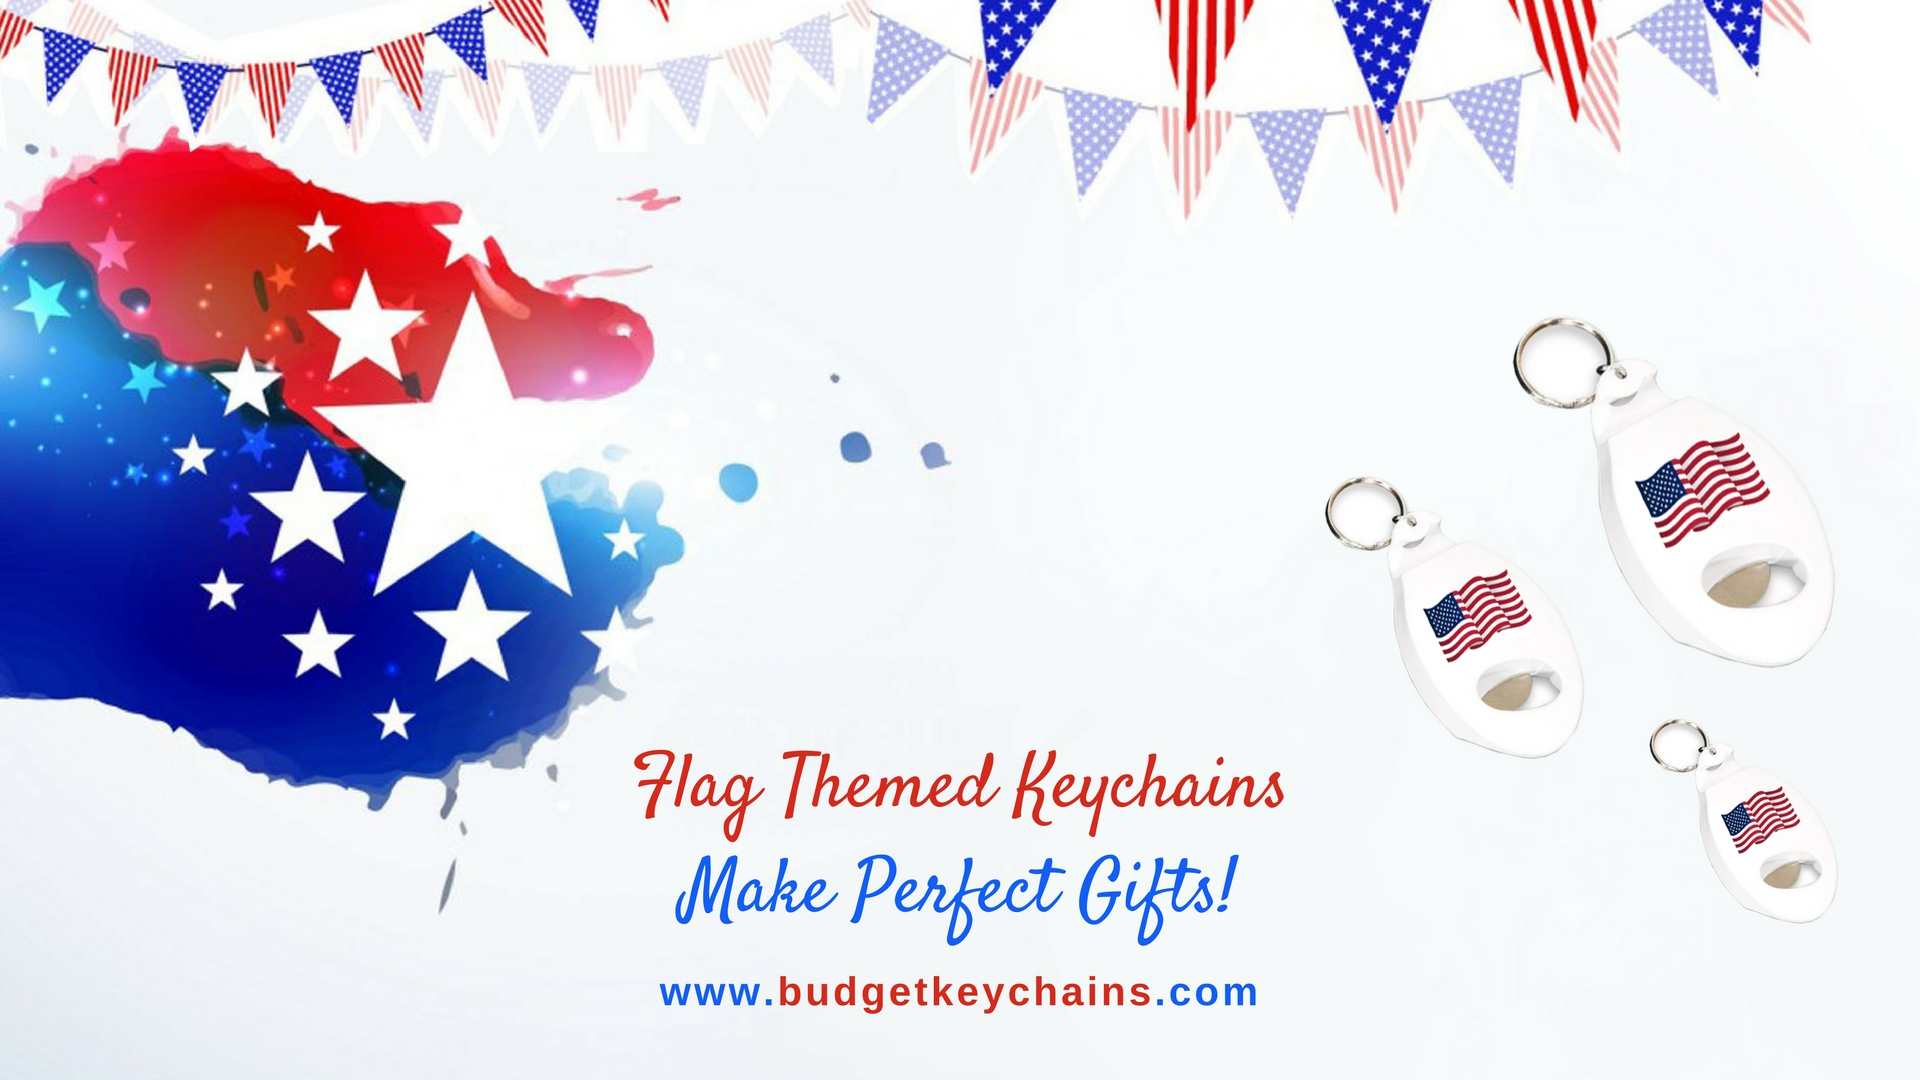 flagThemed-gifts-july4-keychains